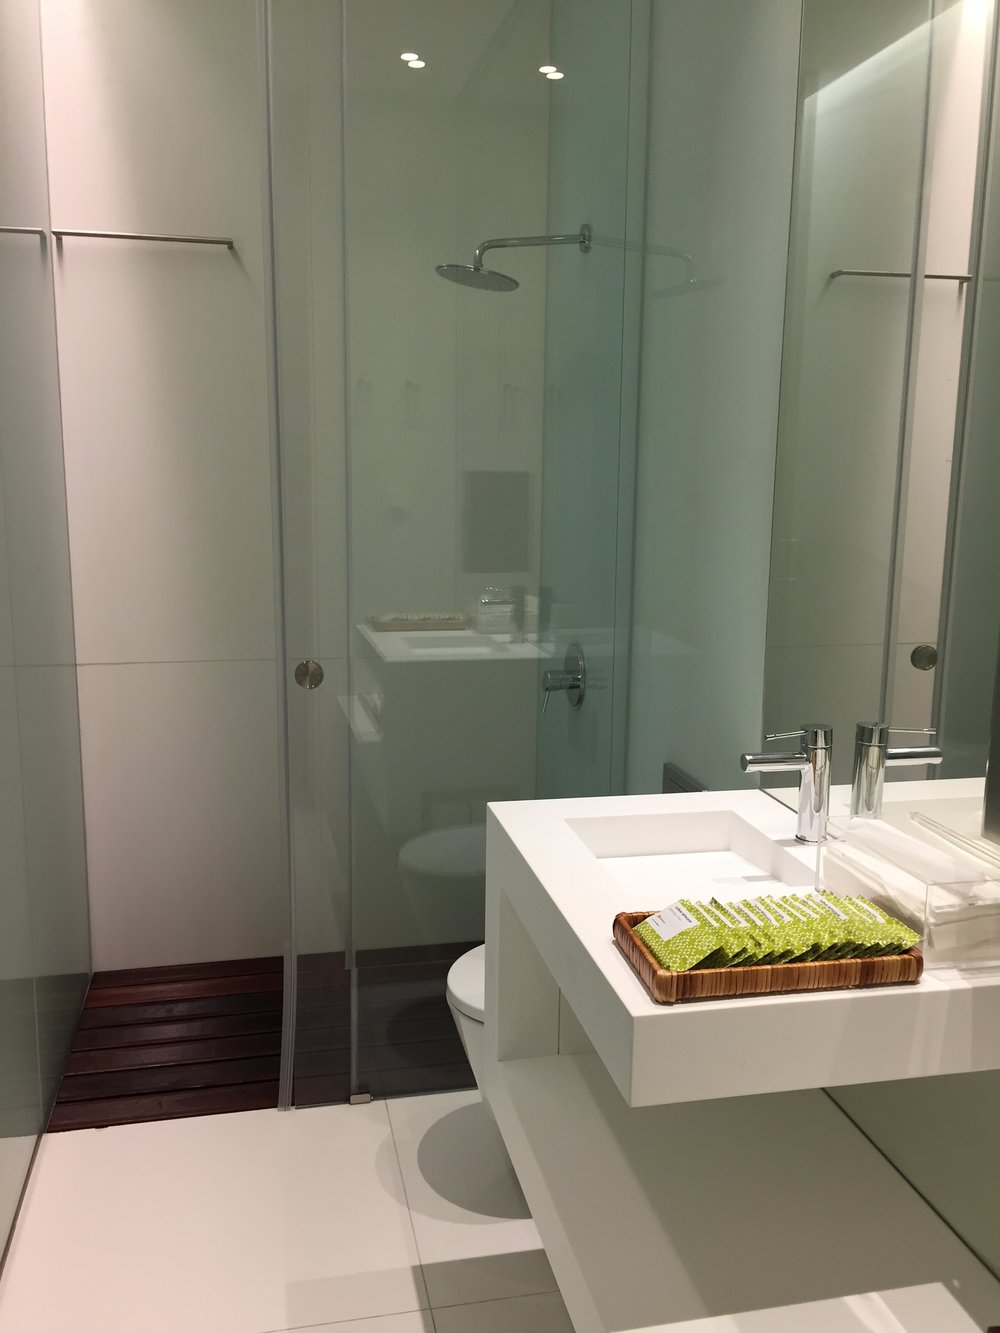 TAP business class lounge shower.JPG